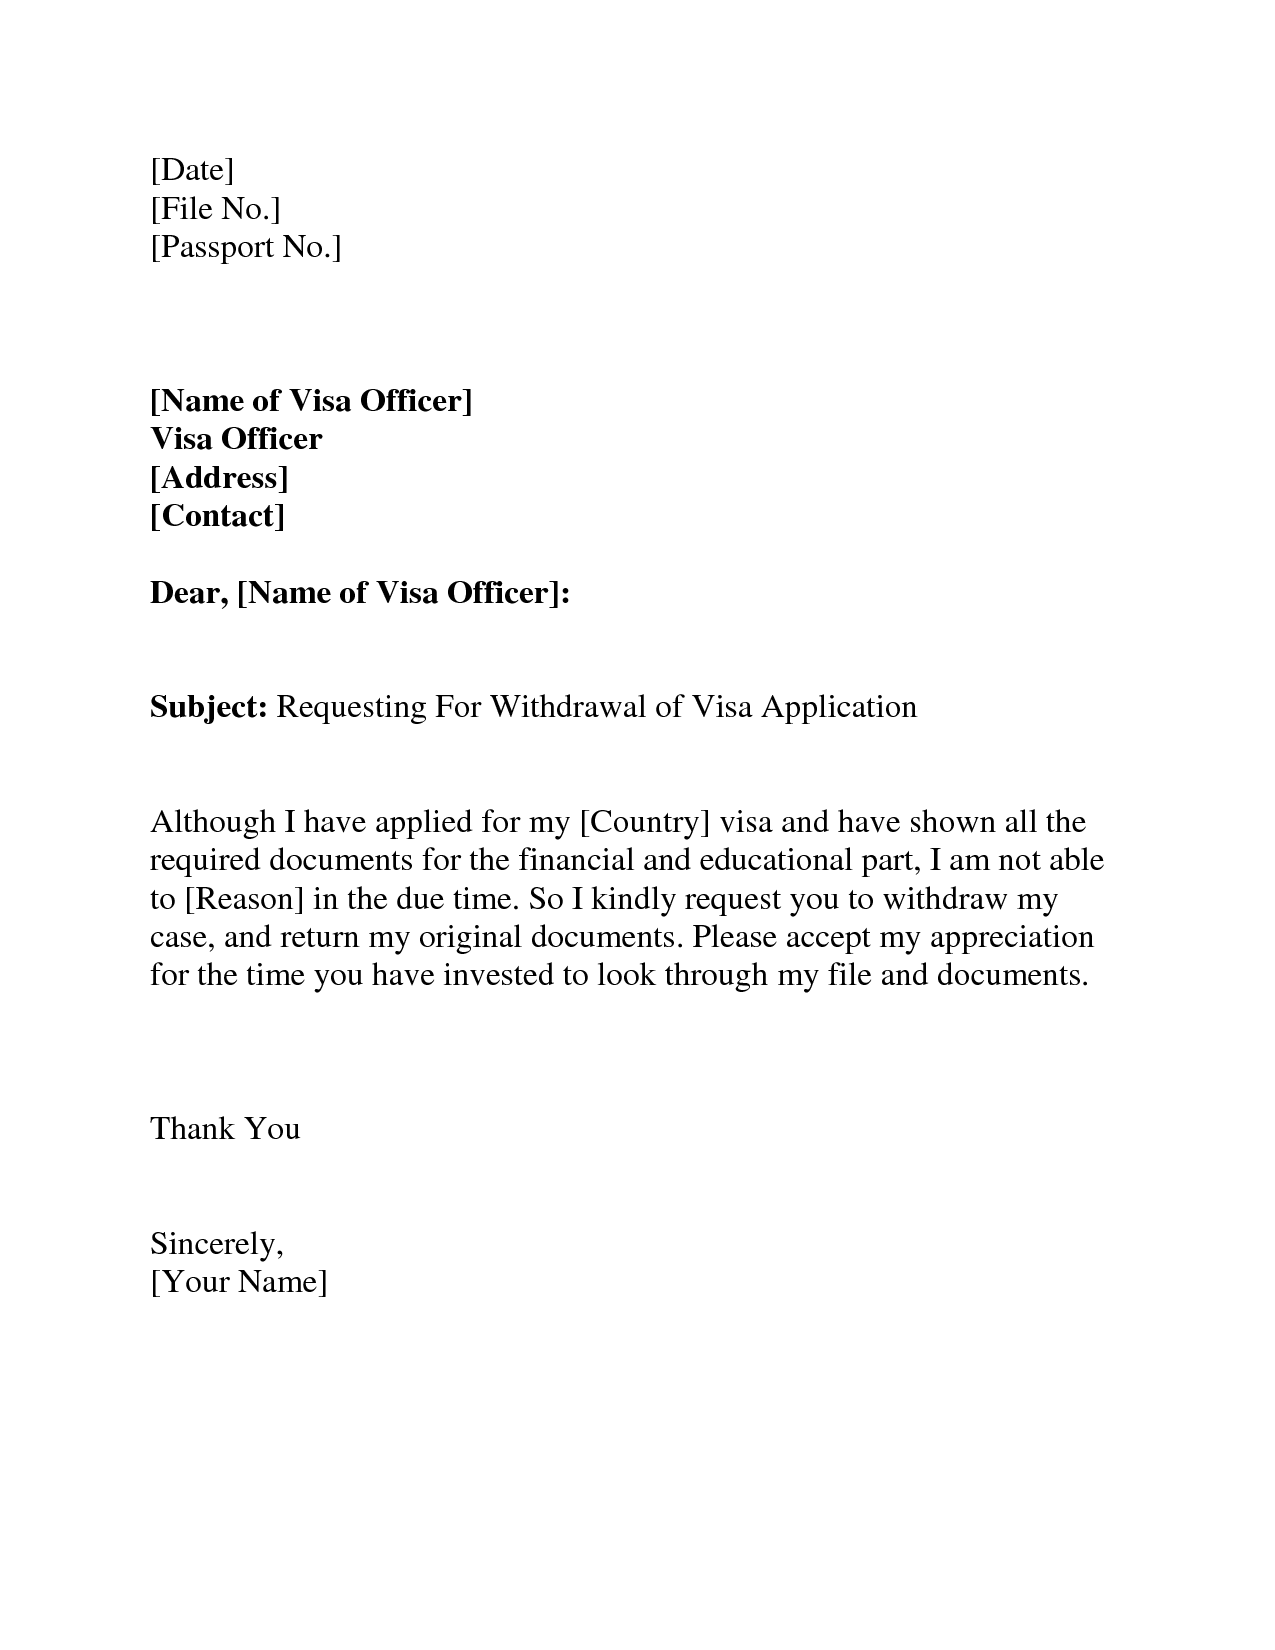 Visa withdrawal letter request letter format letter and emailvisa visa withdrawal letter request letter format letter and emailvisa invitation letter to a friend example application letter sample altavistaventures Images